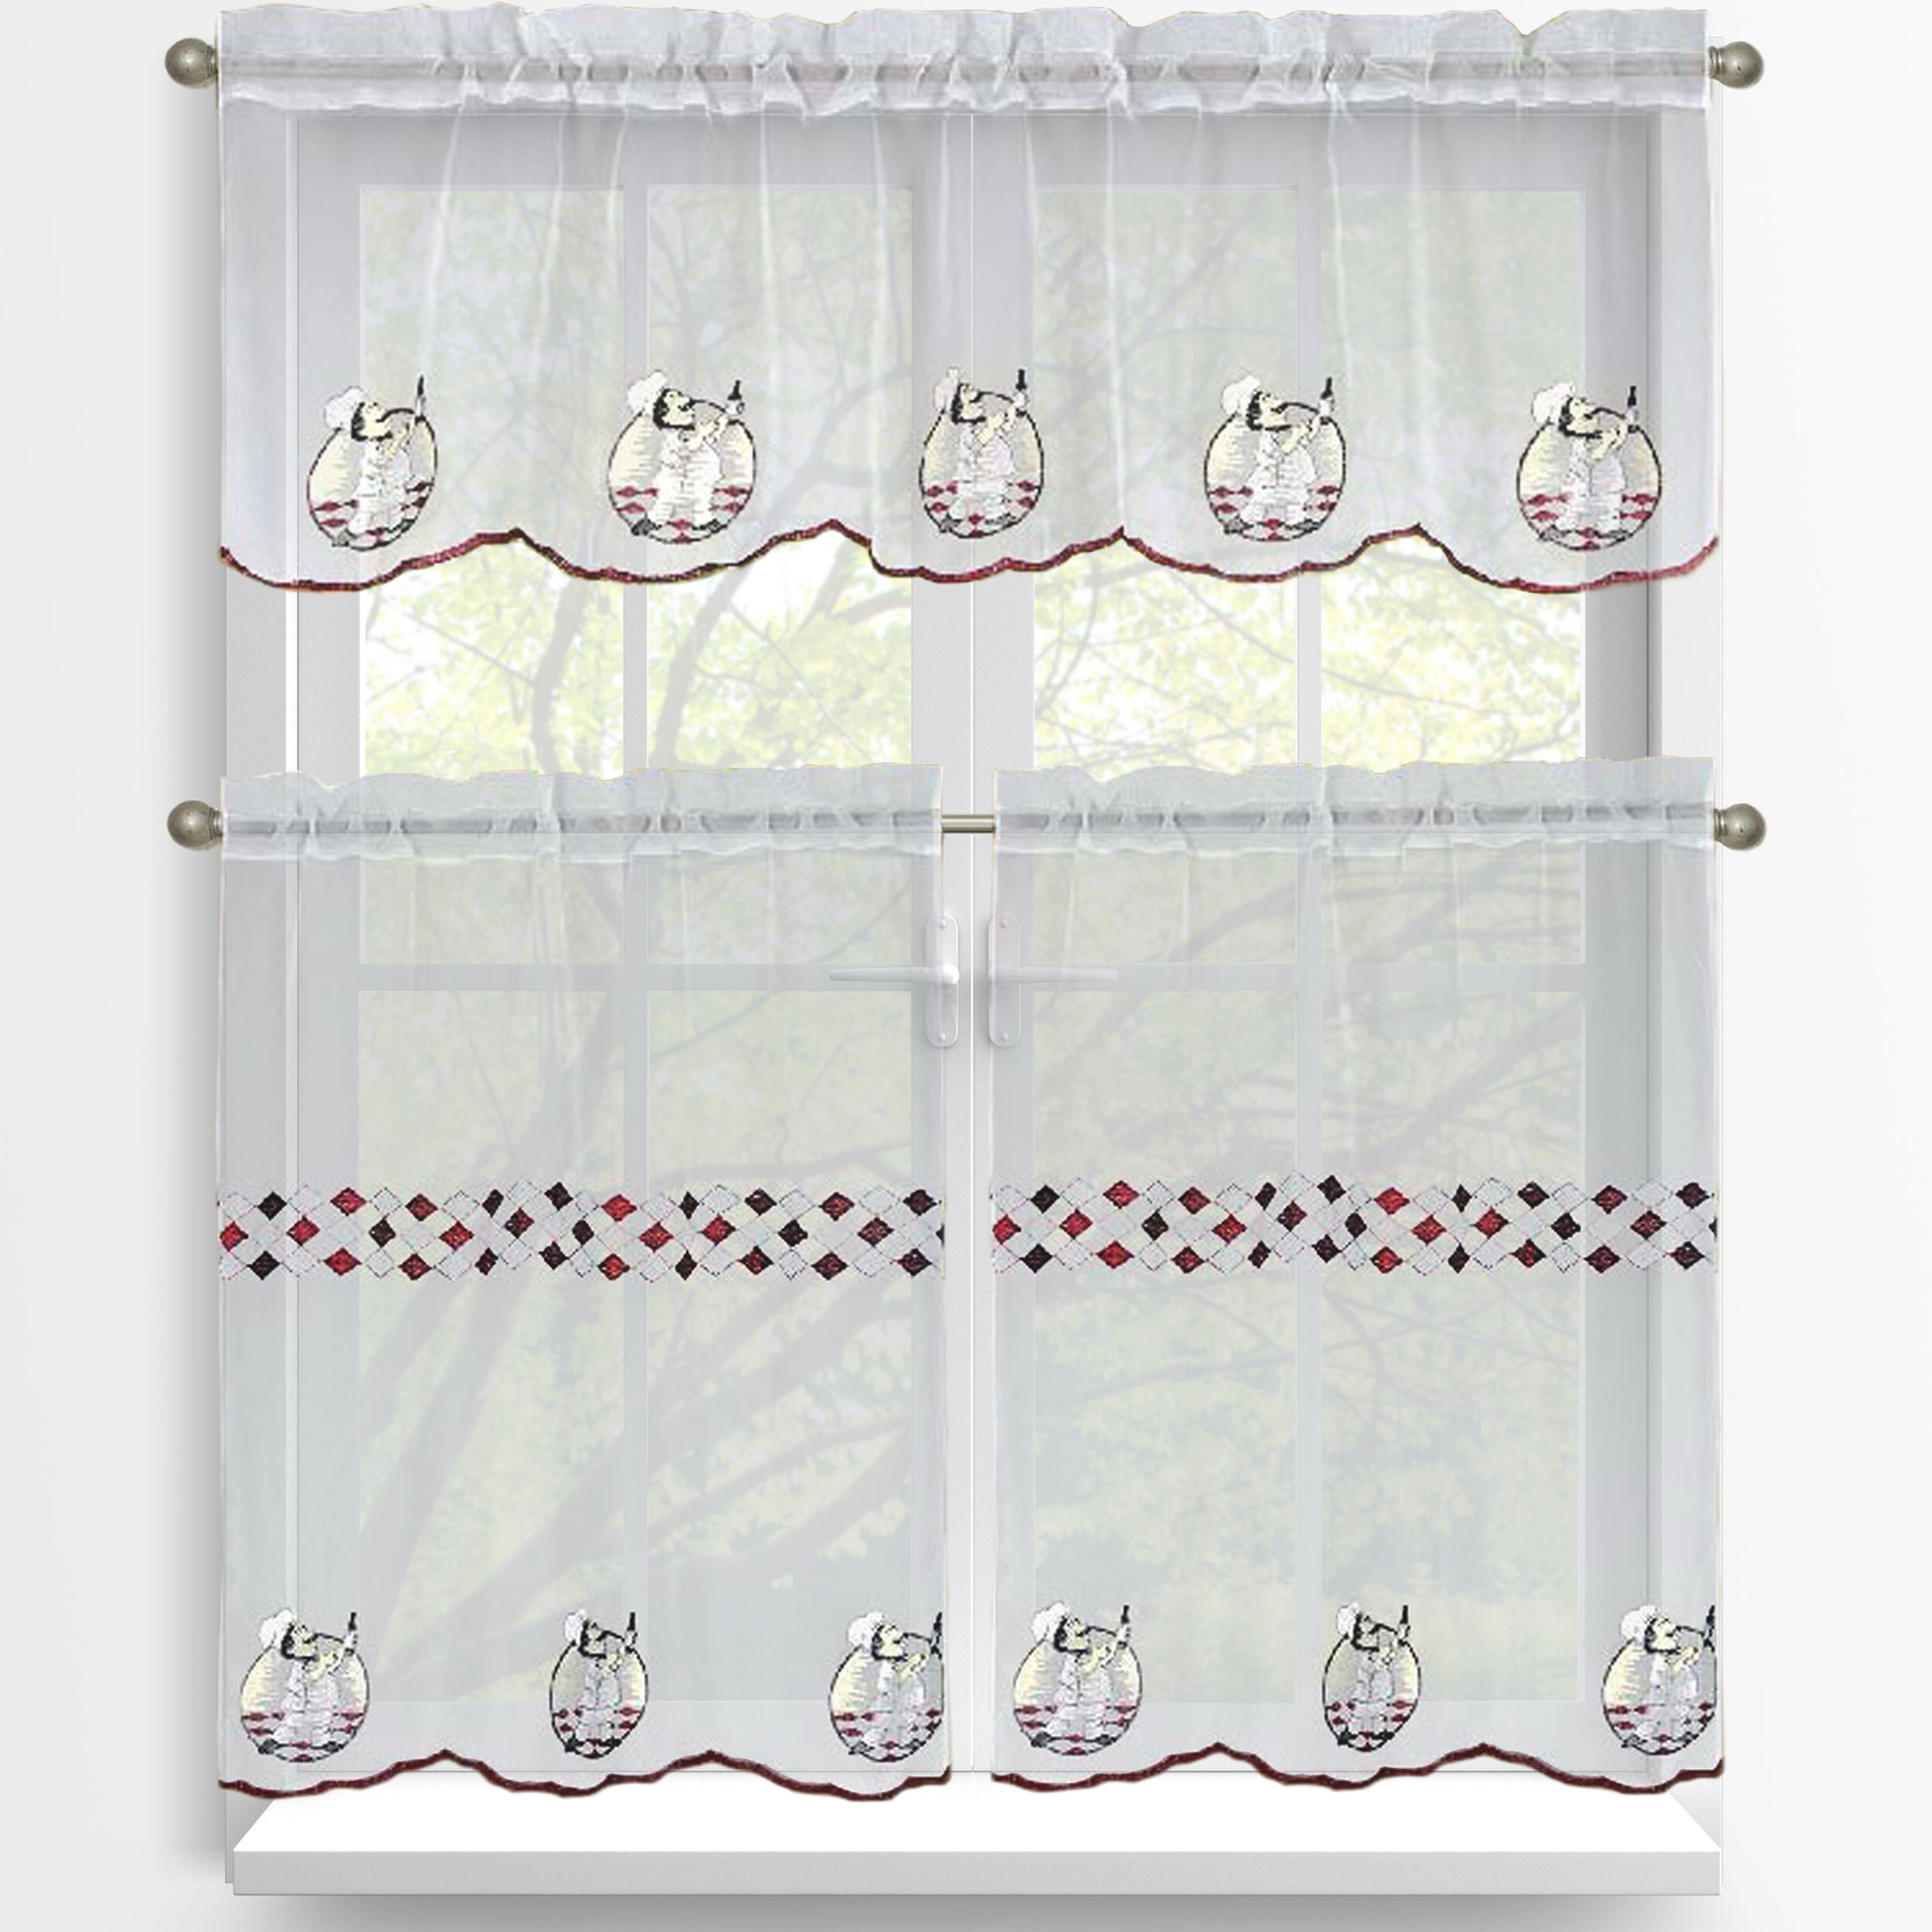 Urban Embroidered Tier And Valance Kitchen Curtain Tier Sets Regarding Latest Crandon 3 Piece Embroidered Kitchen Tier And Valance Set (View 16 of 20)